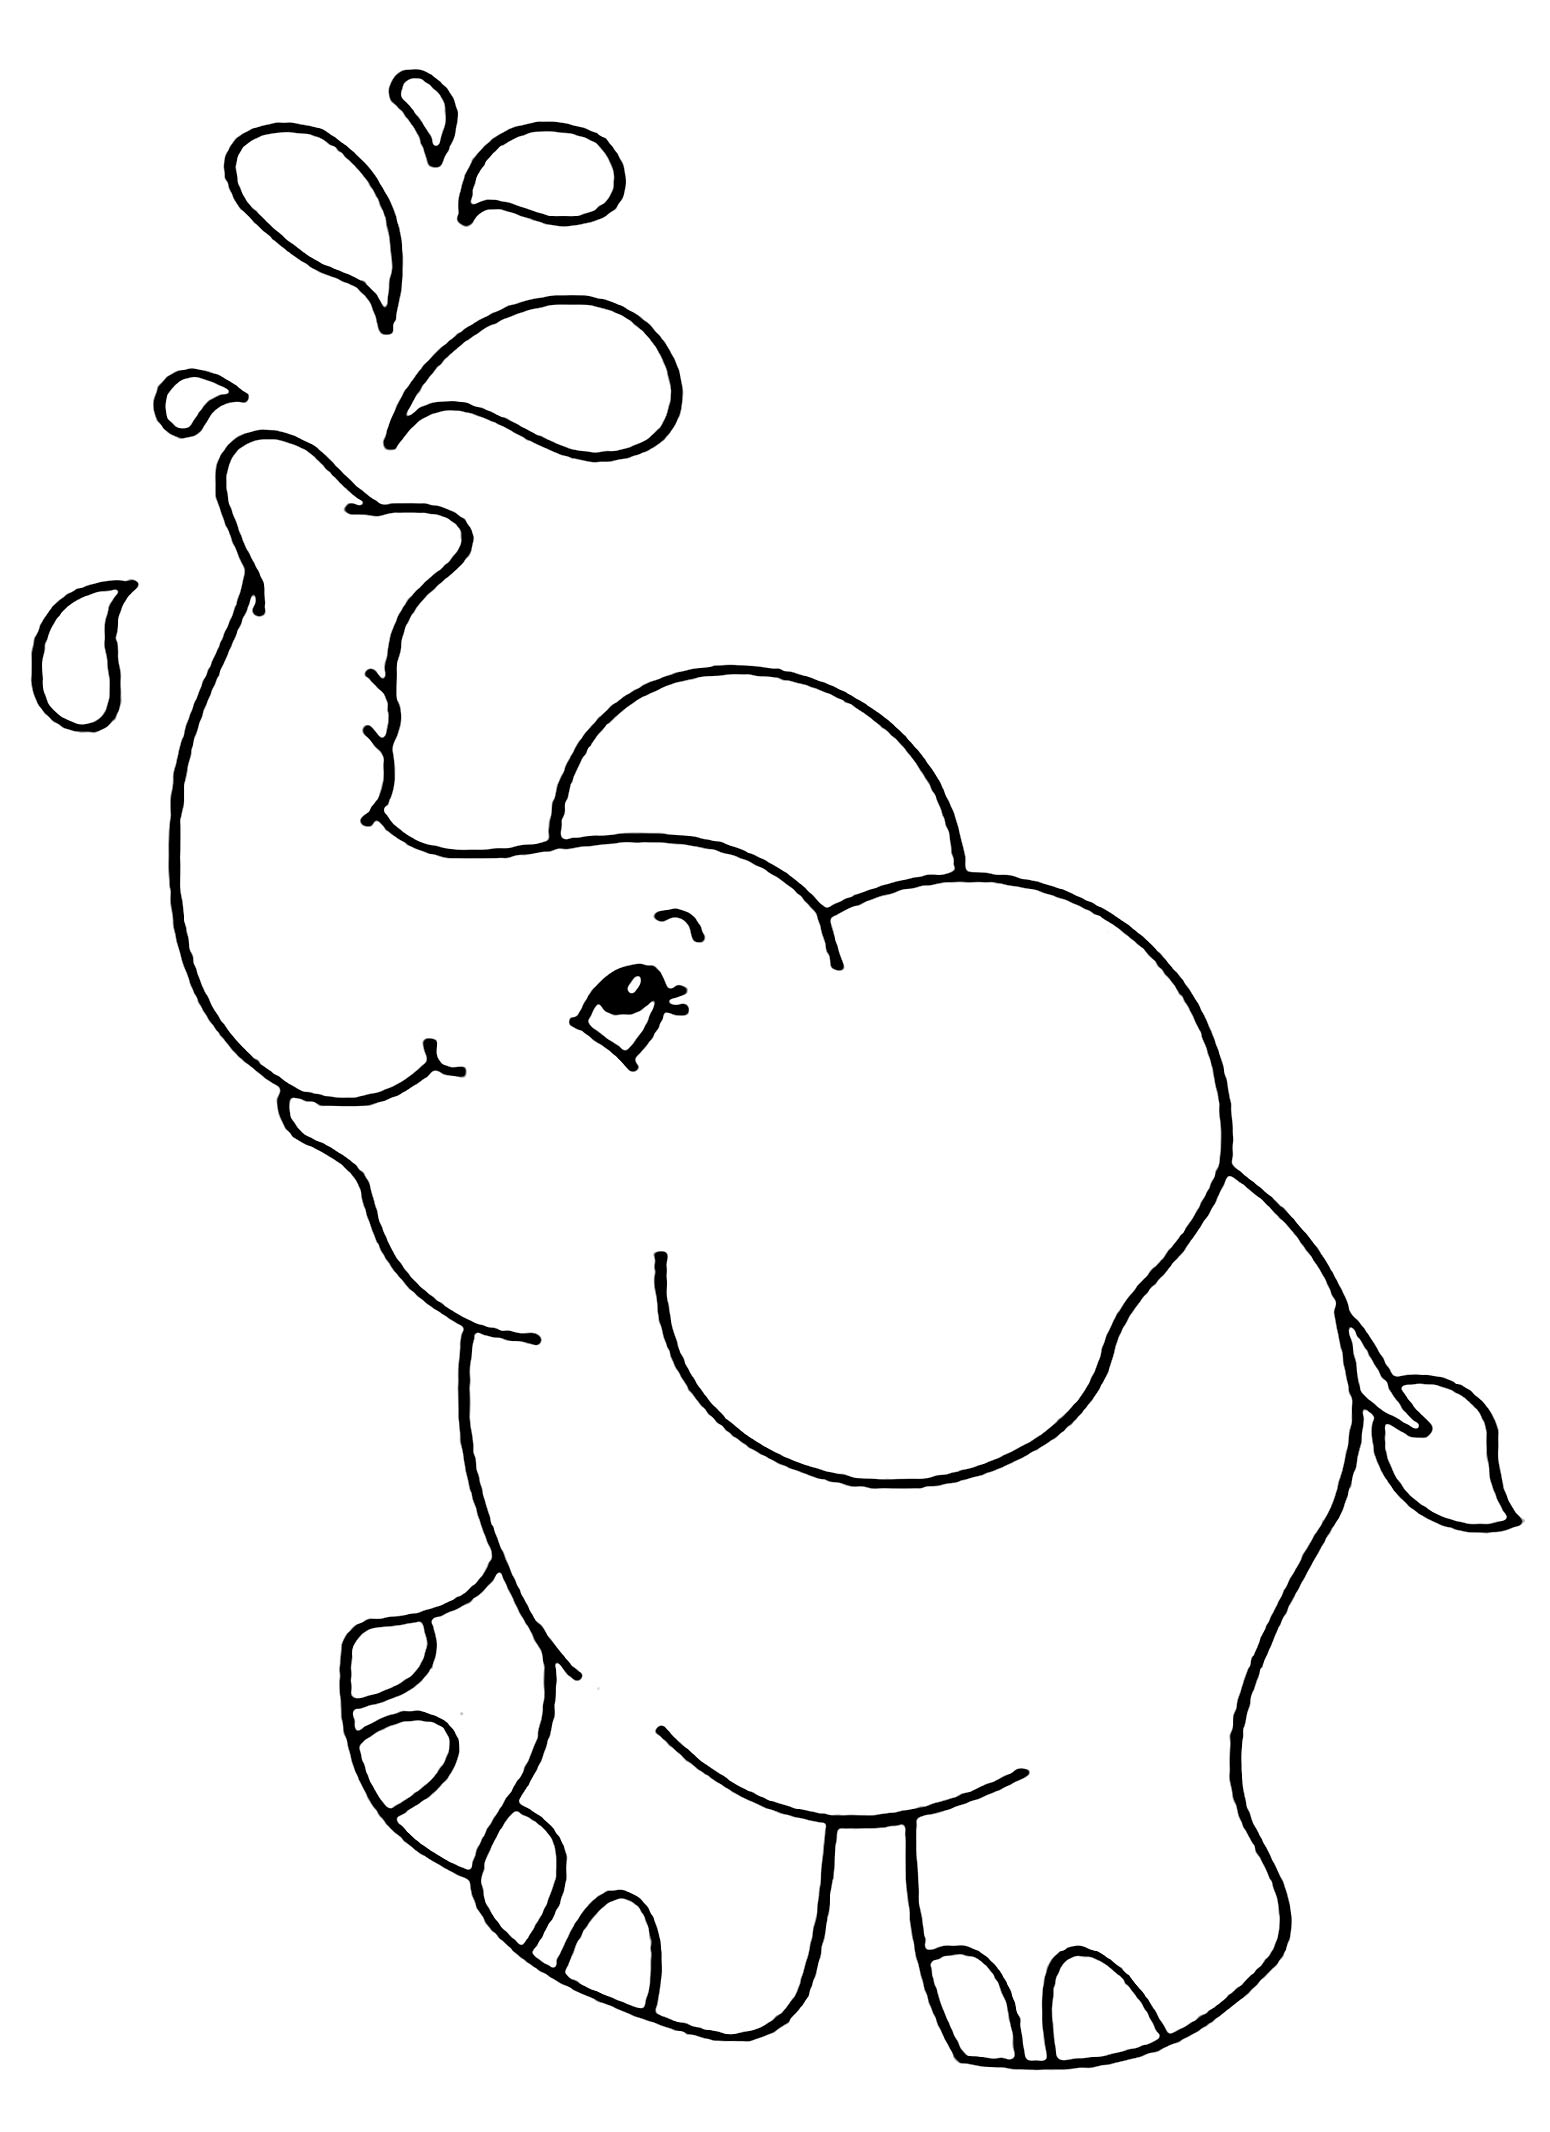 Elephants Free To Color For Kids